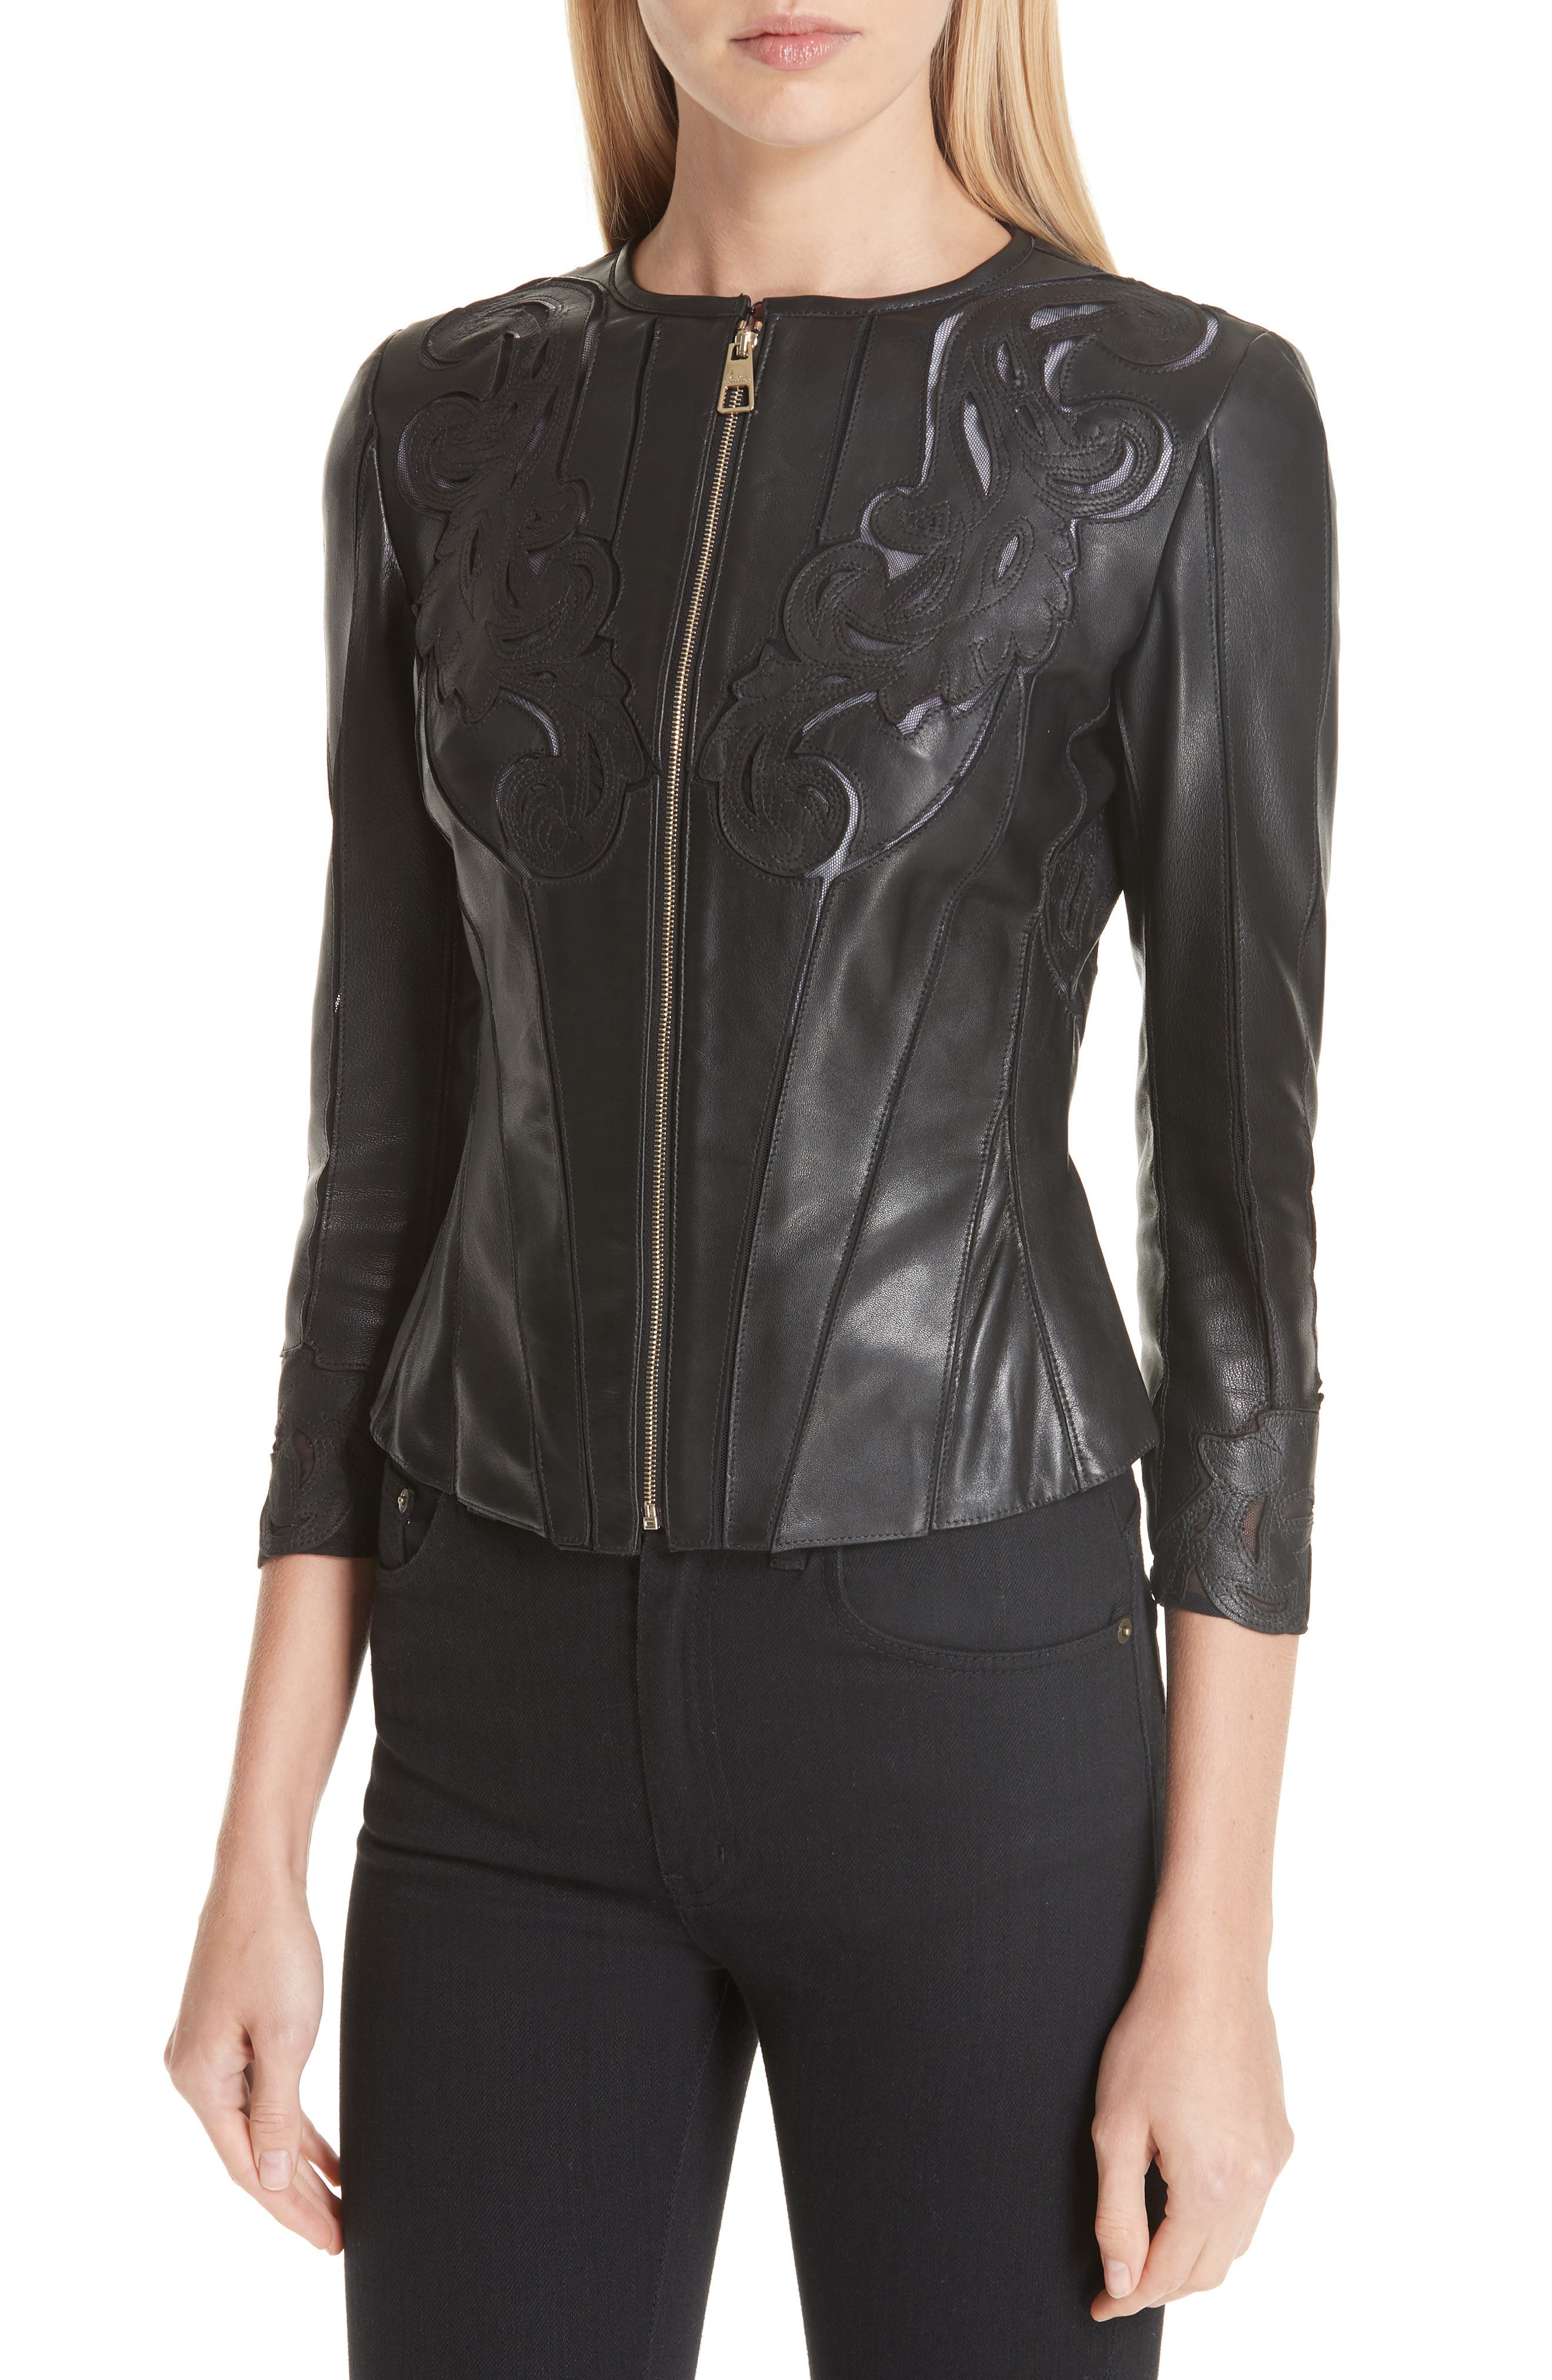 VERSACE COLLECTION, Fitted Leather Jacket, Alternate thumbnail 5, color, BLACK